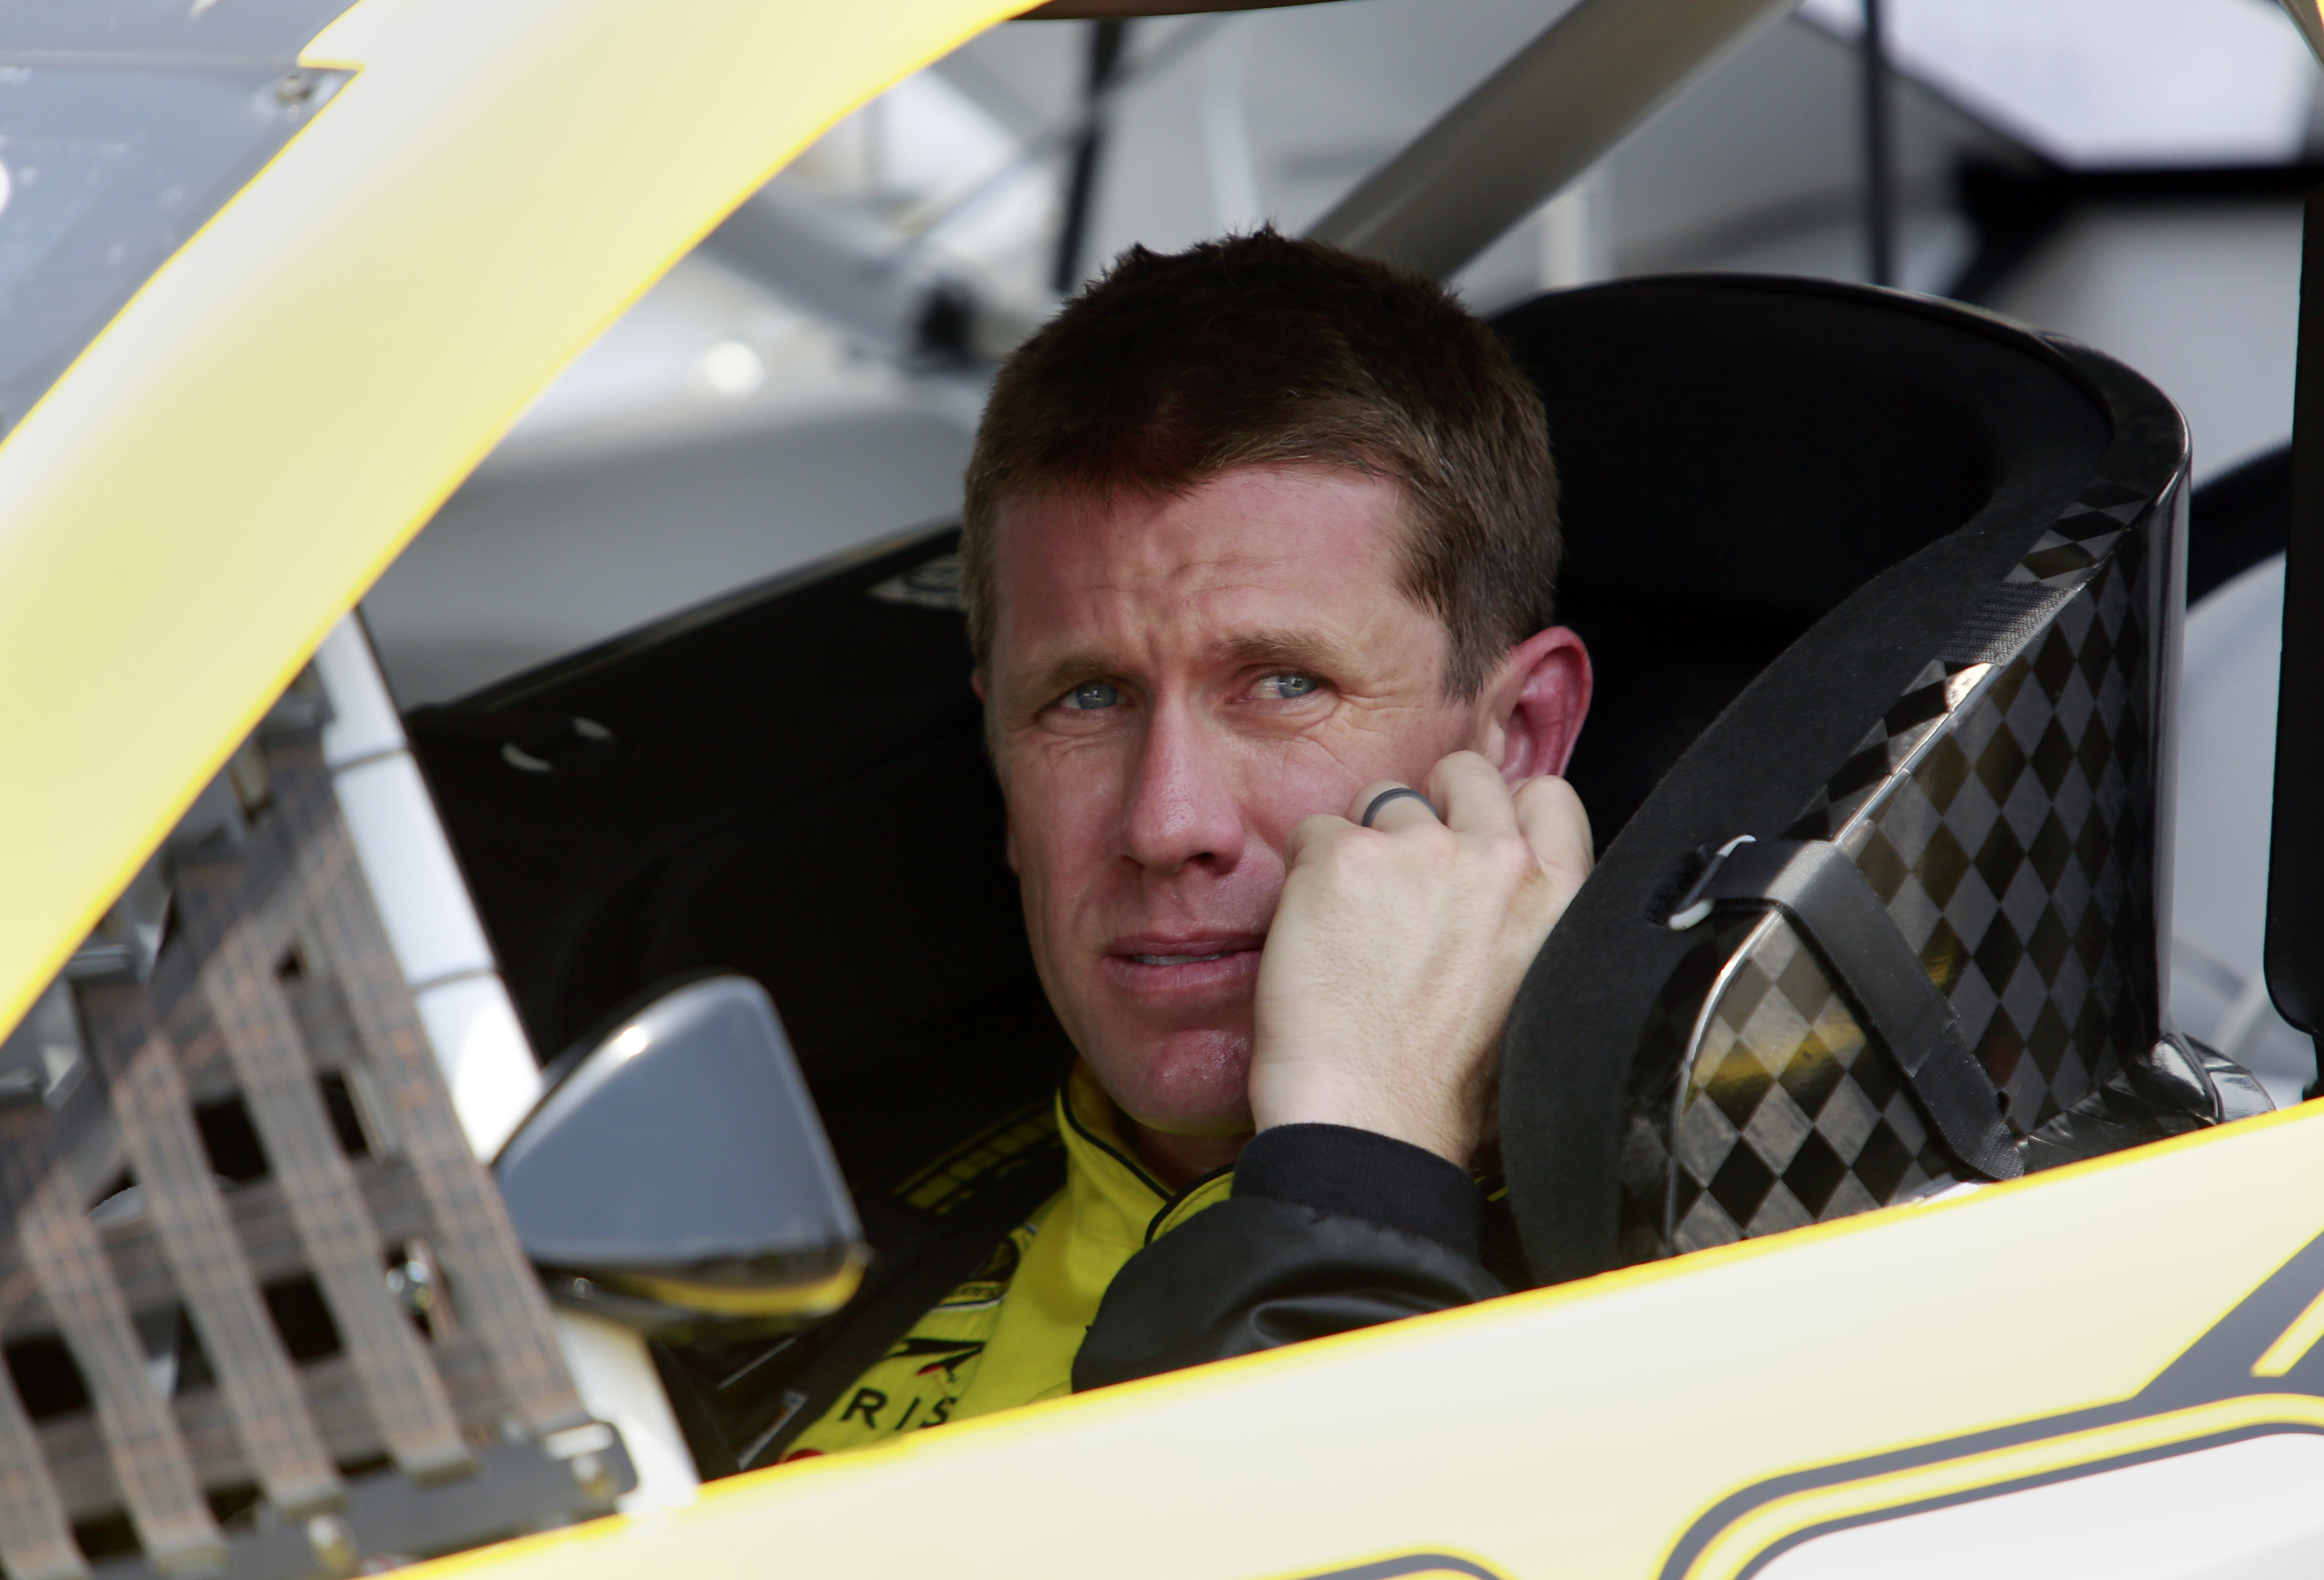 Sprint Cup Series driver Carl Edwards (19) sits in his car during qualifying for the NASCAR Brickyard 400 auto race at Indianapolis Motor Speedway in Indianapolis, Saturday, July 25, 2015. (AP Photo/R Brent Smith)